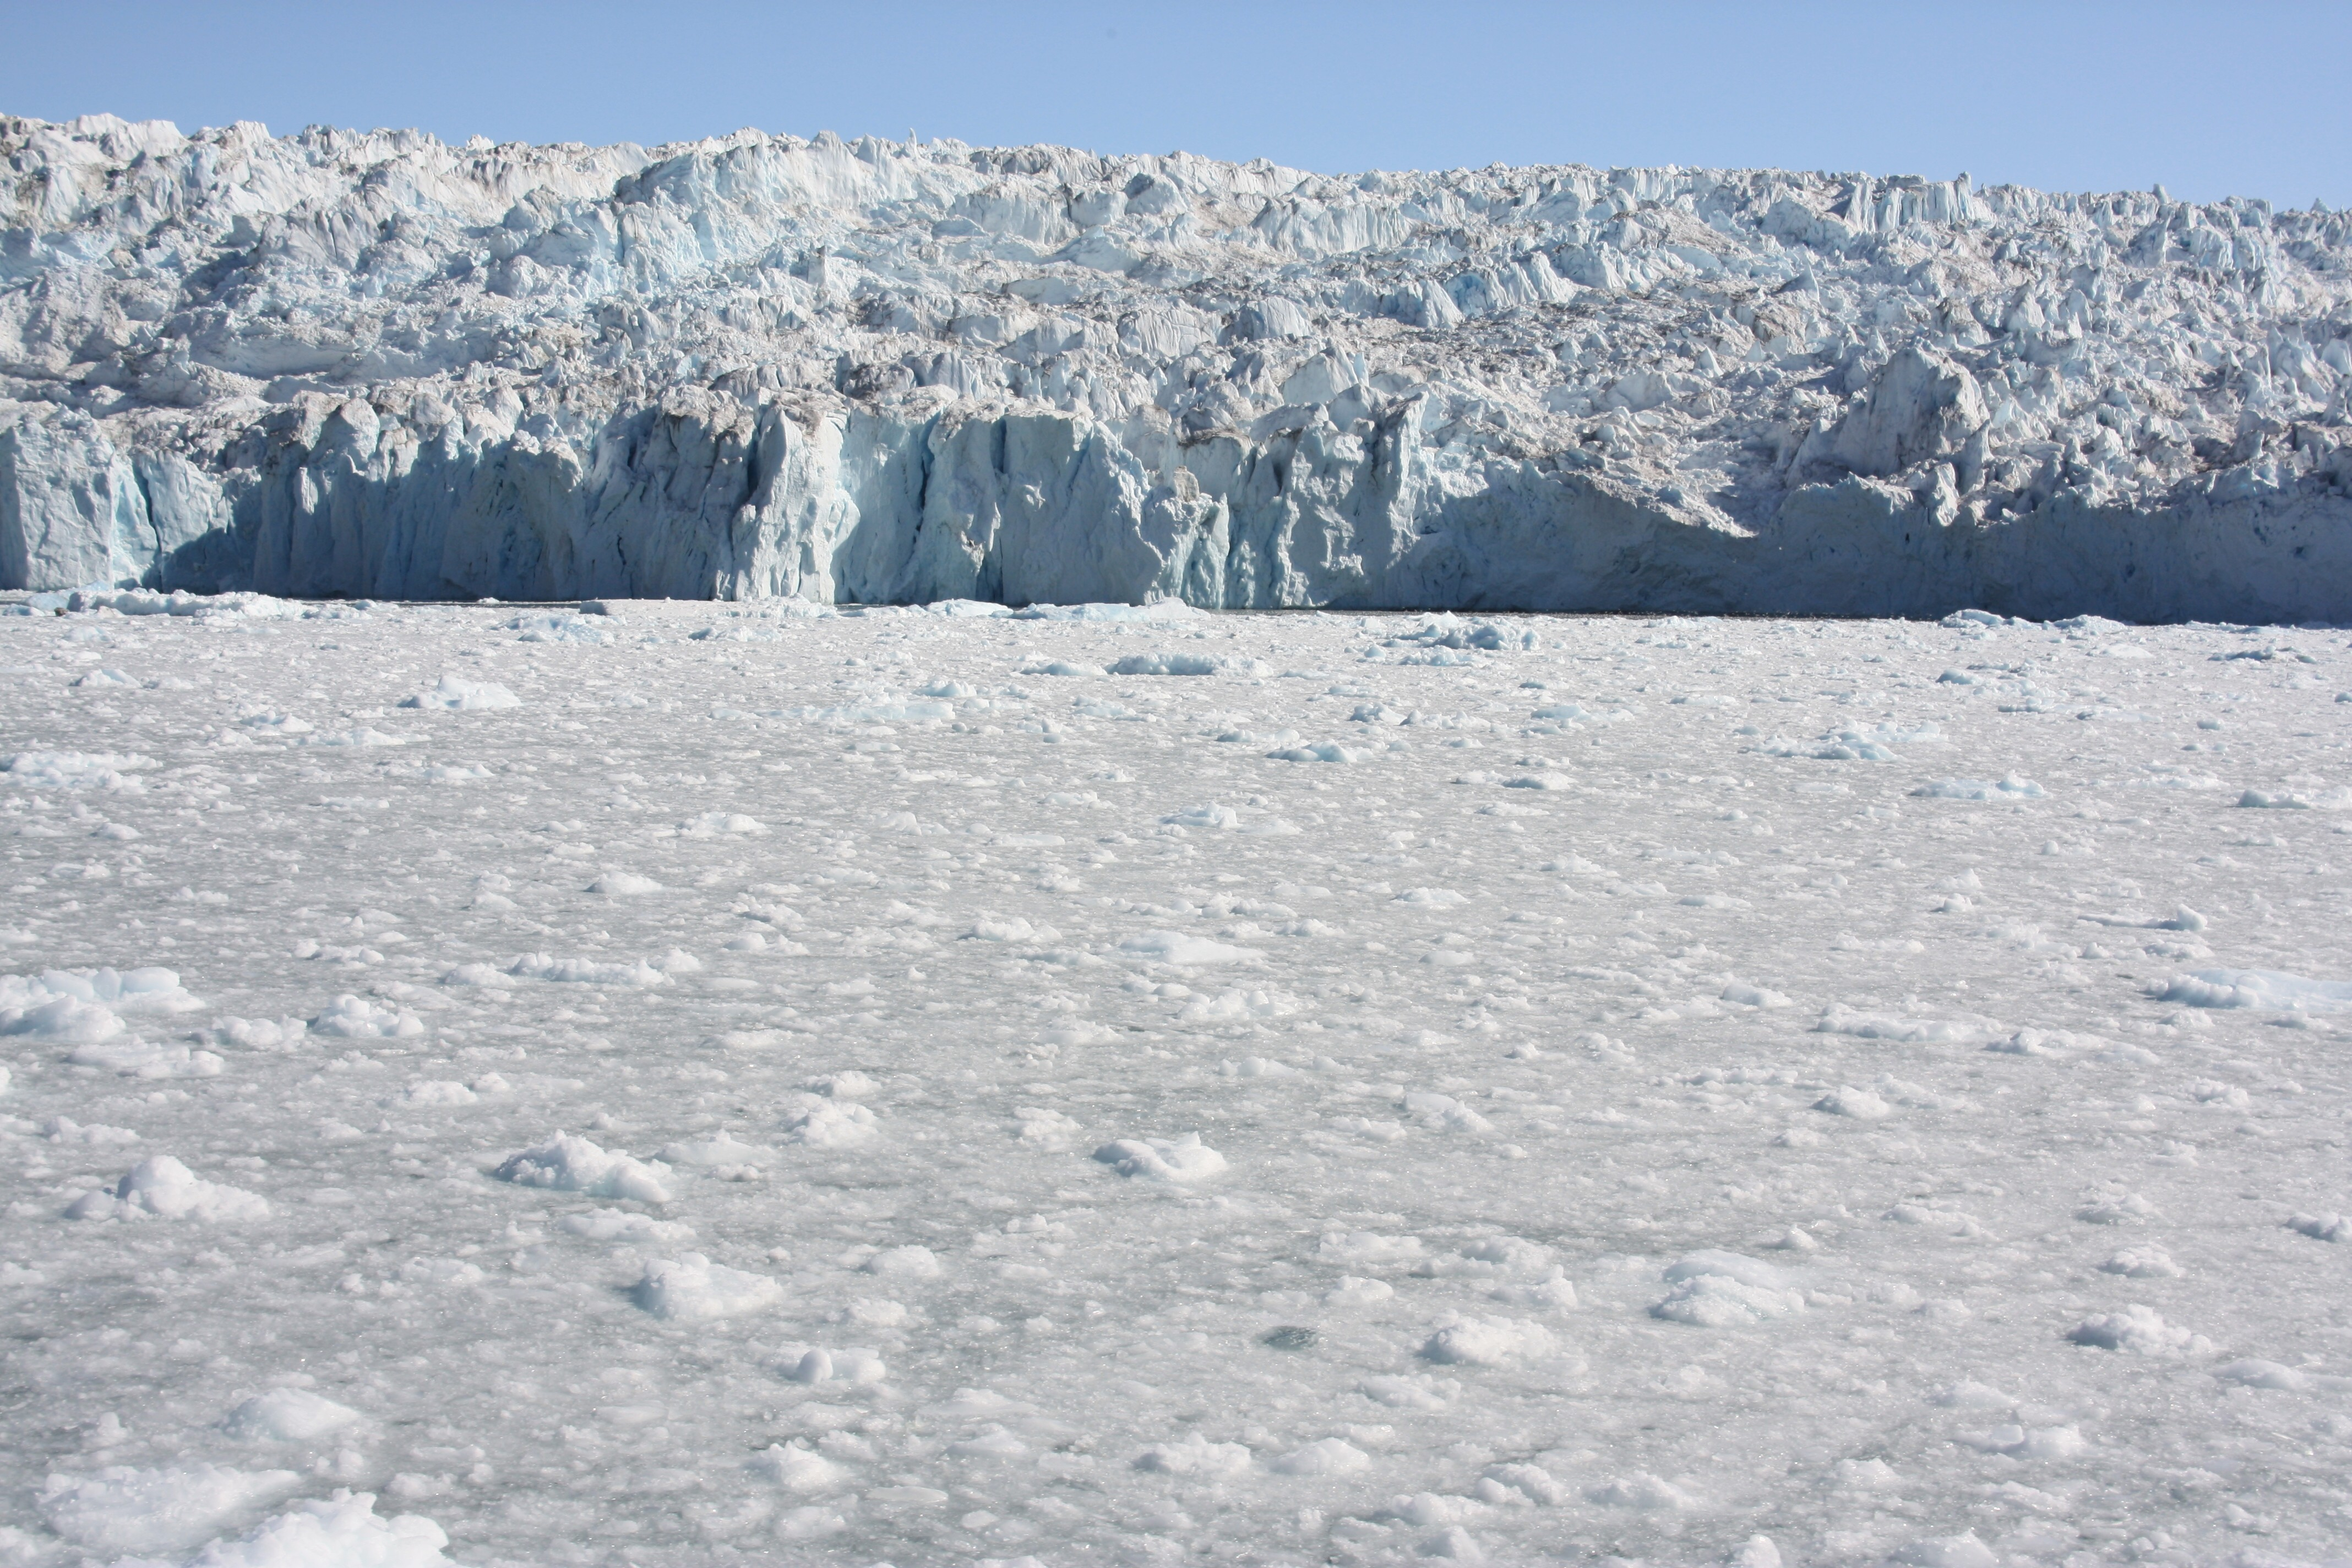 Polar ice being discharged into the sea in Greenland. ( I.Quaile/Deutsche Welle)